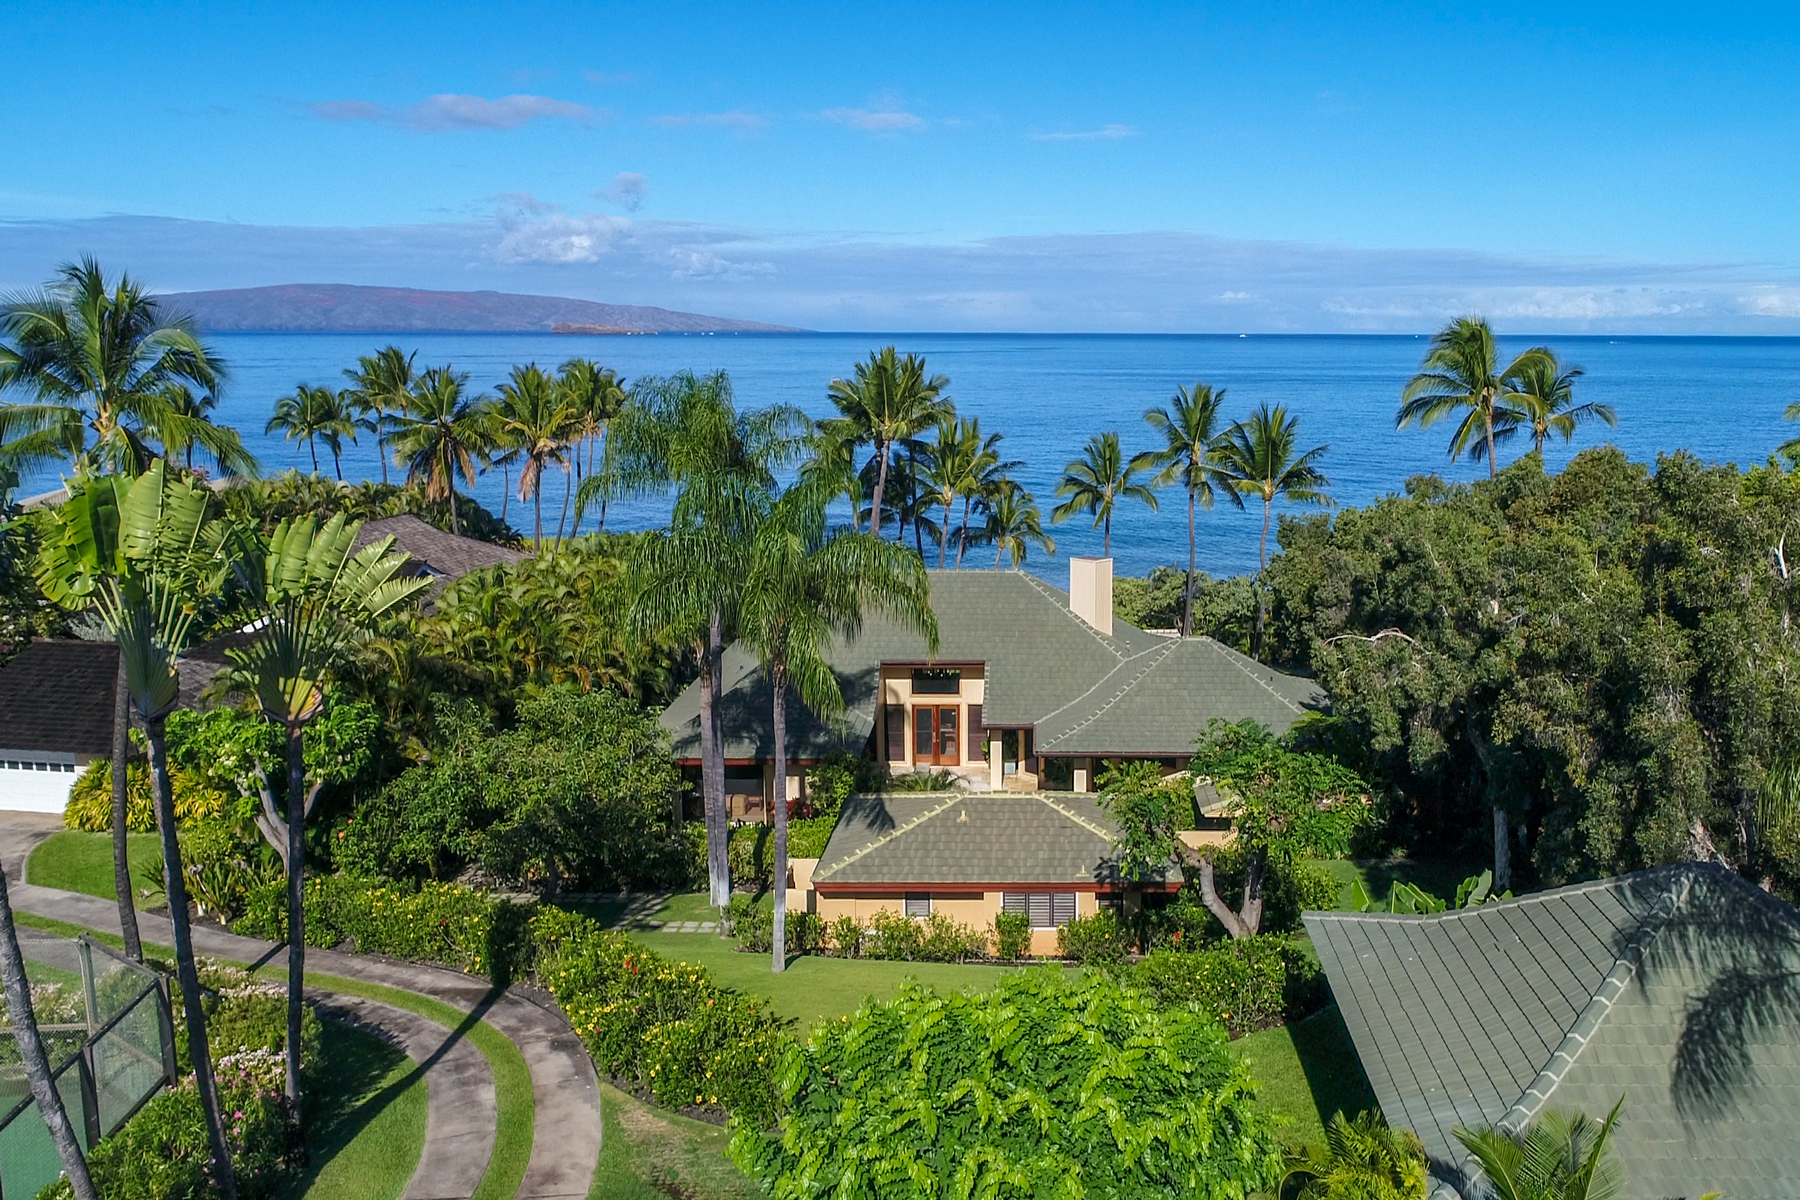 Single Family Homes for Active at Makena Beach Home - Private, Charming, Island Living 4680 Makena Rd Makena, Hawaii 96753 United States